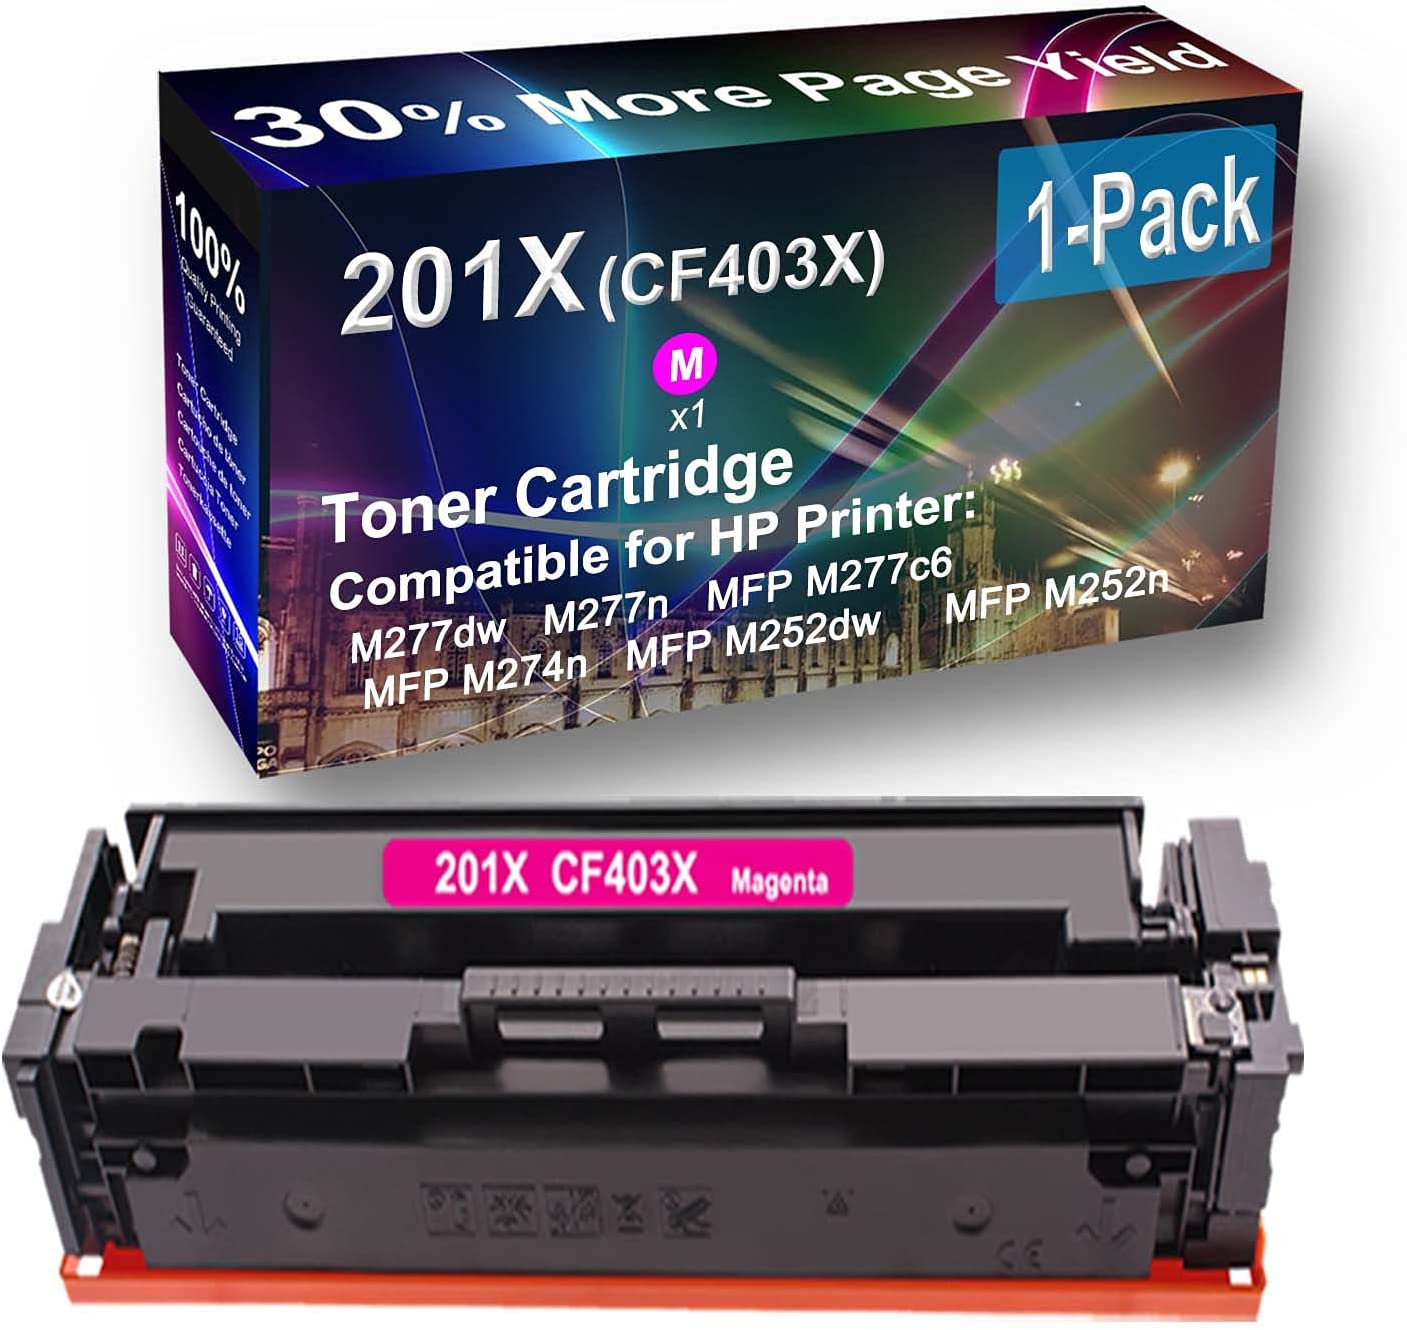 1-Pack (Magenta) Compatible High Yield 201X (CF403X) Toner Cartridge use for HP MFP M252dw, MFP M252n Printer